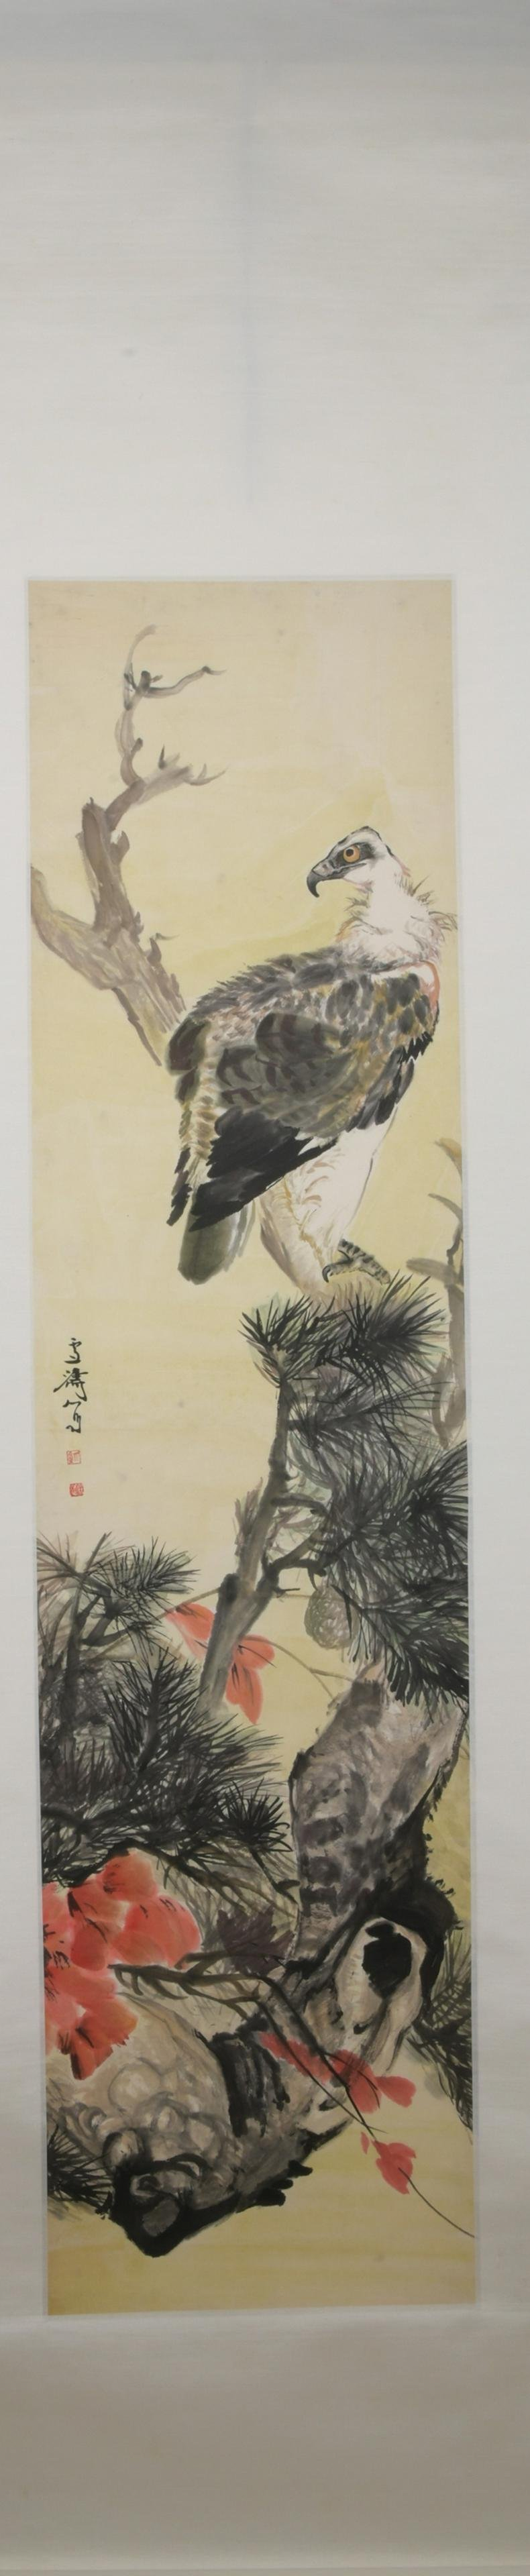 Modern Wang xuetao's flower and bird painting